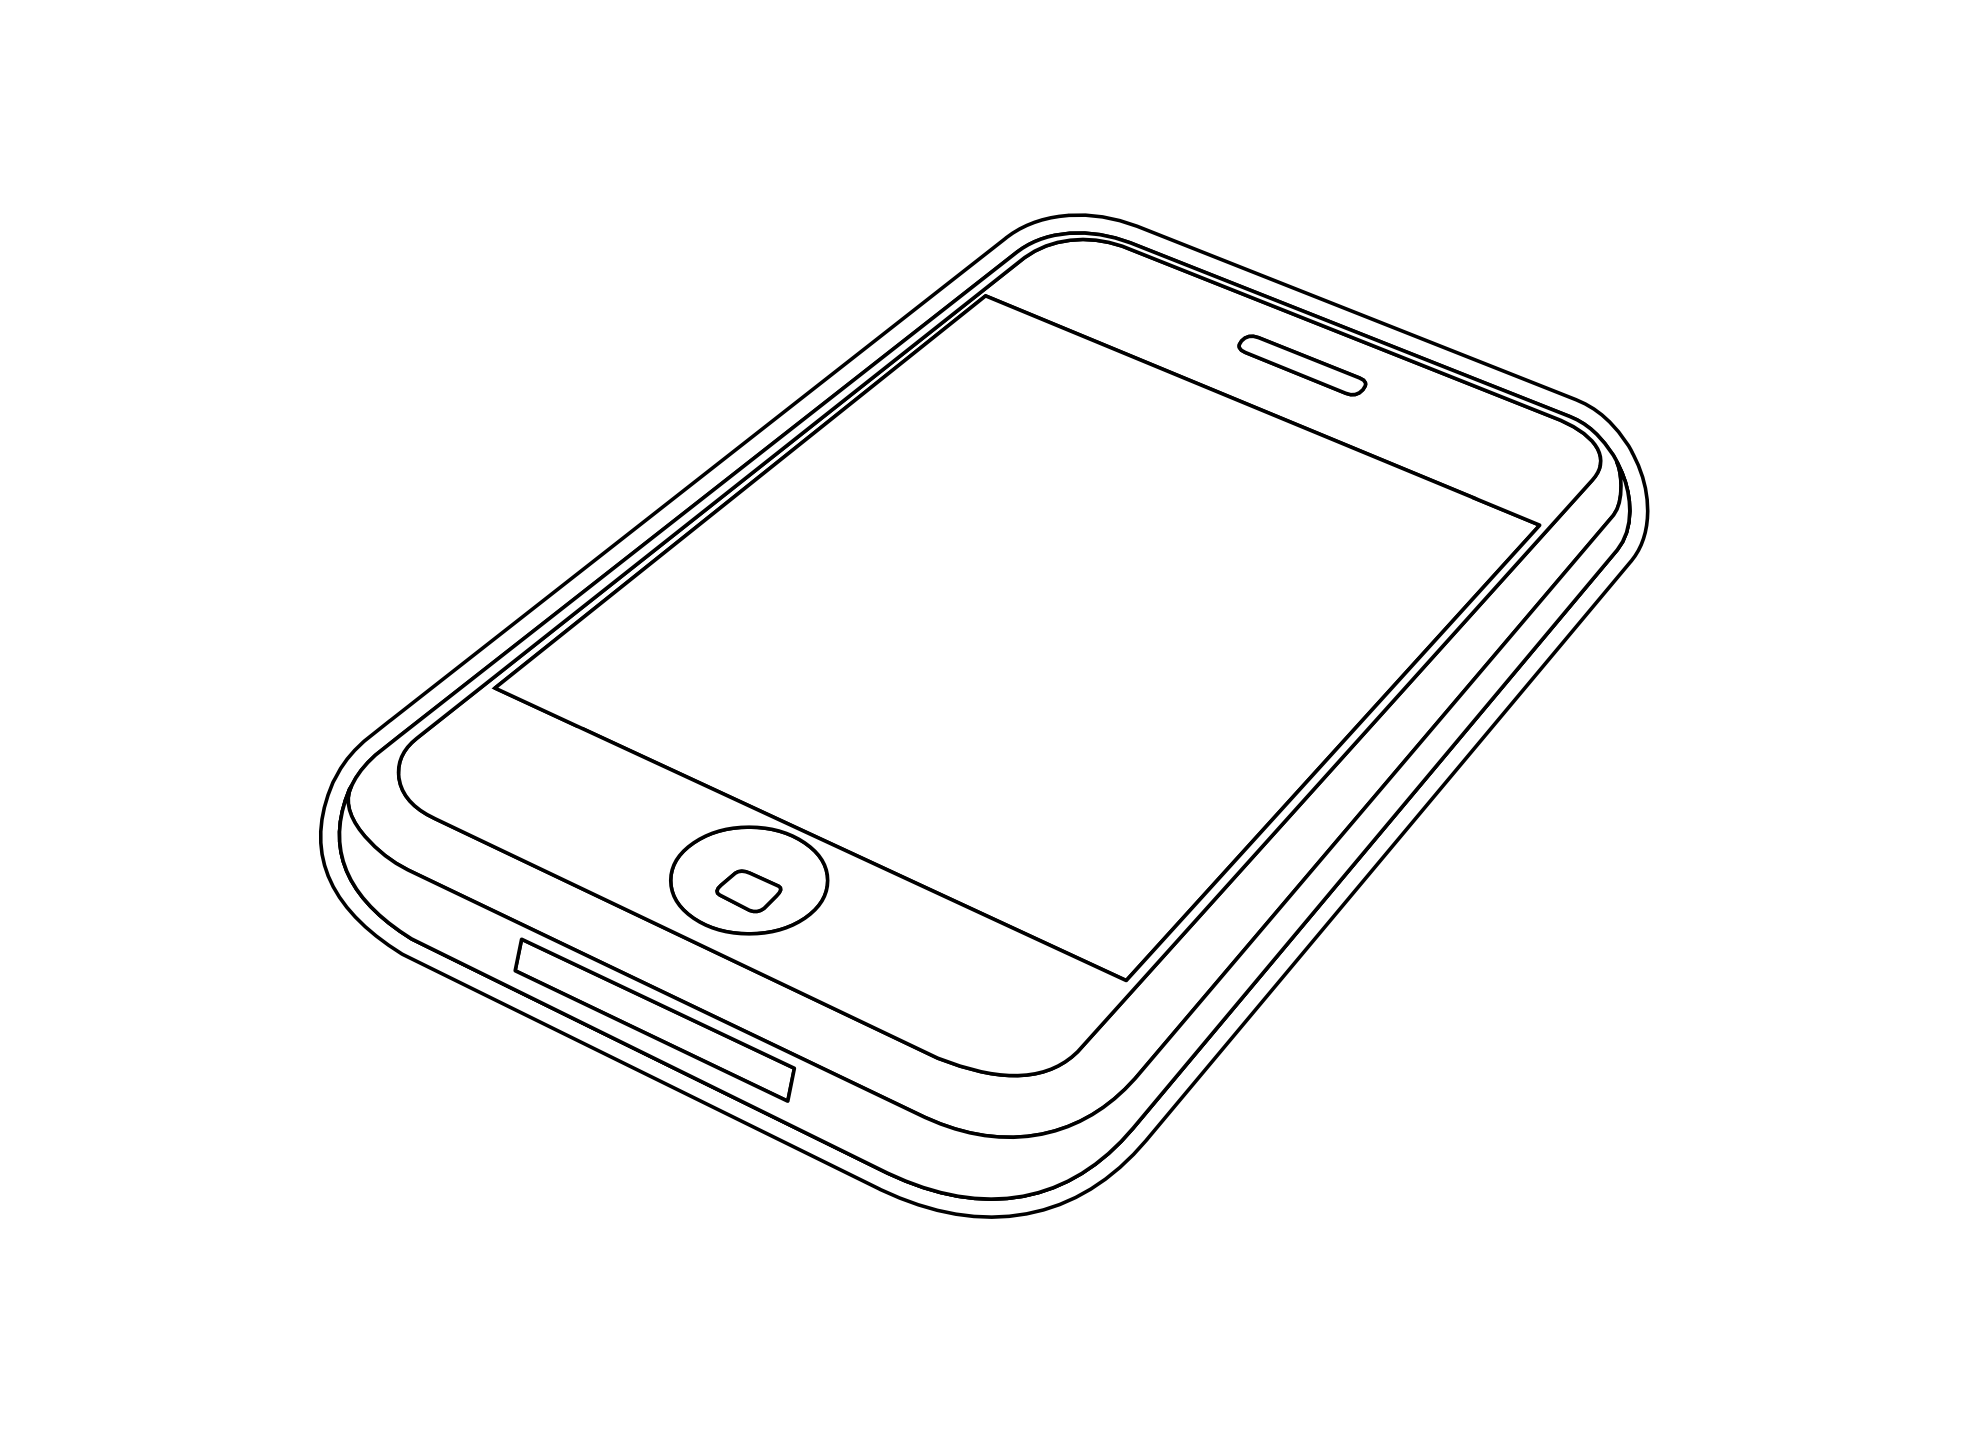 iphone 3gs black white line art scalable vector graphics